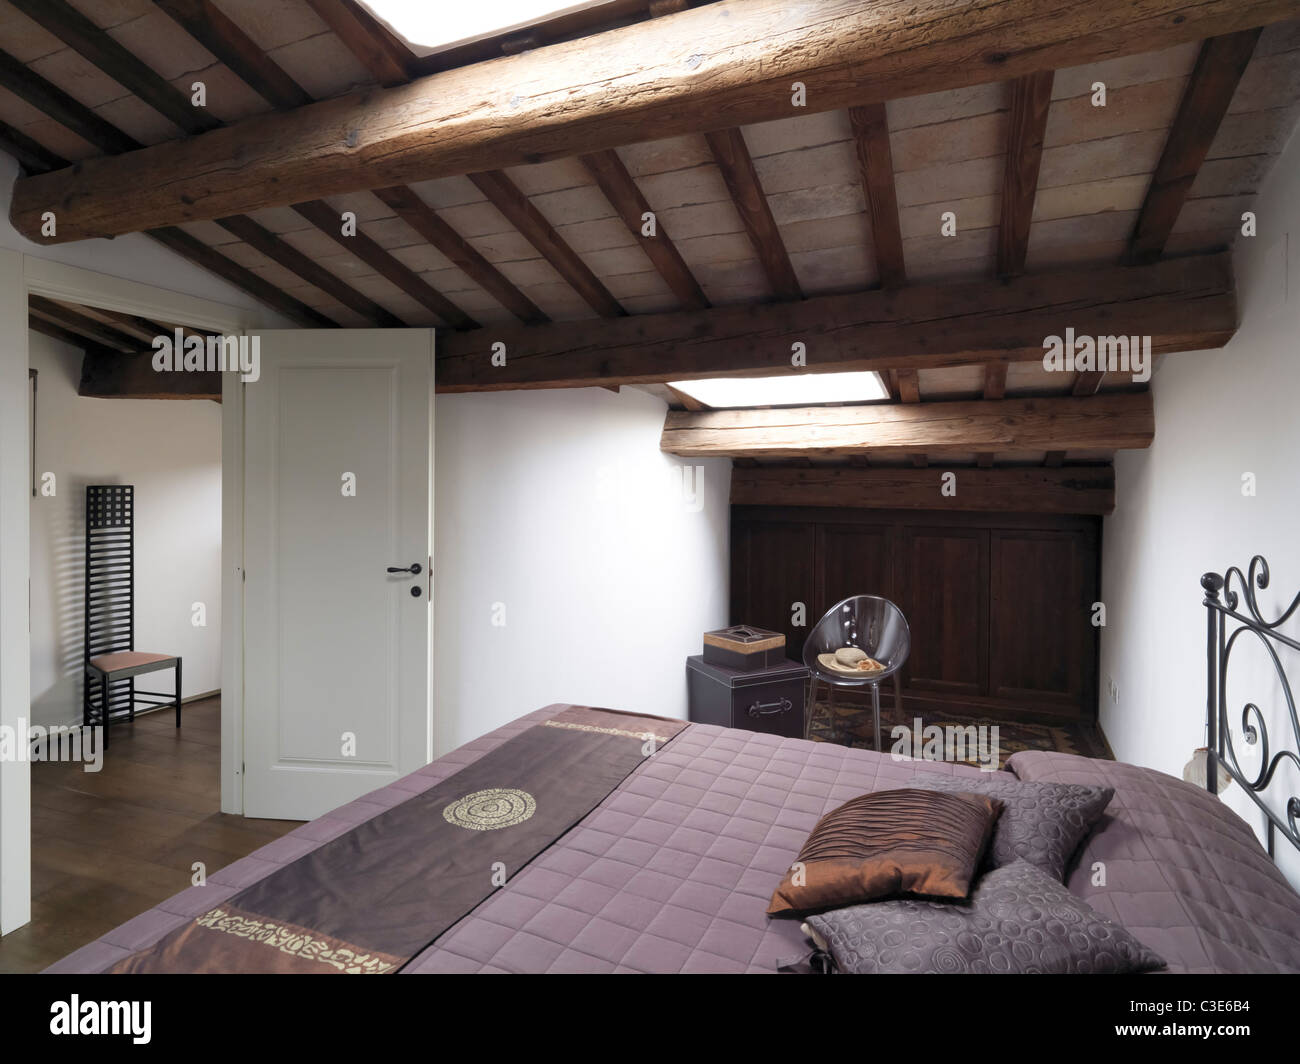 classic bedroom in the attic - Stock Image